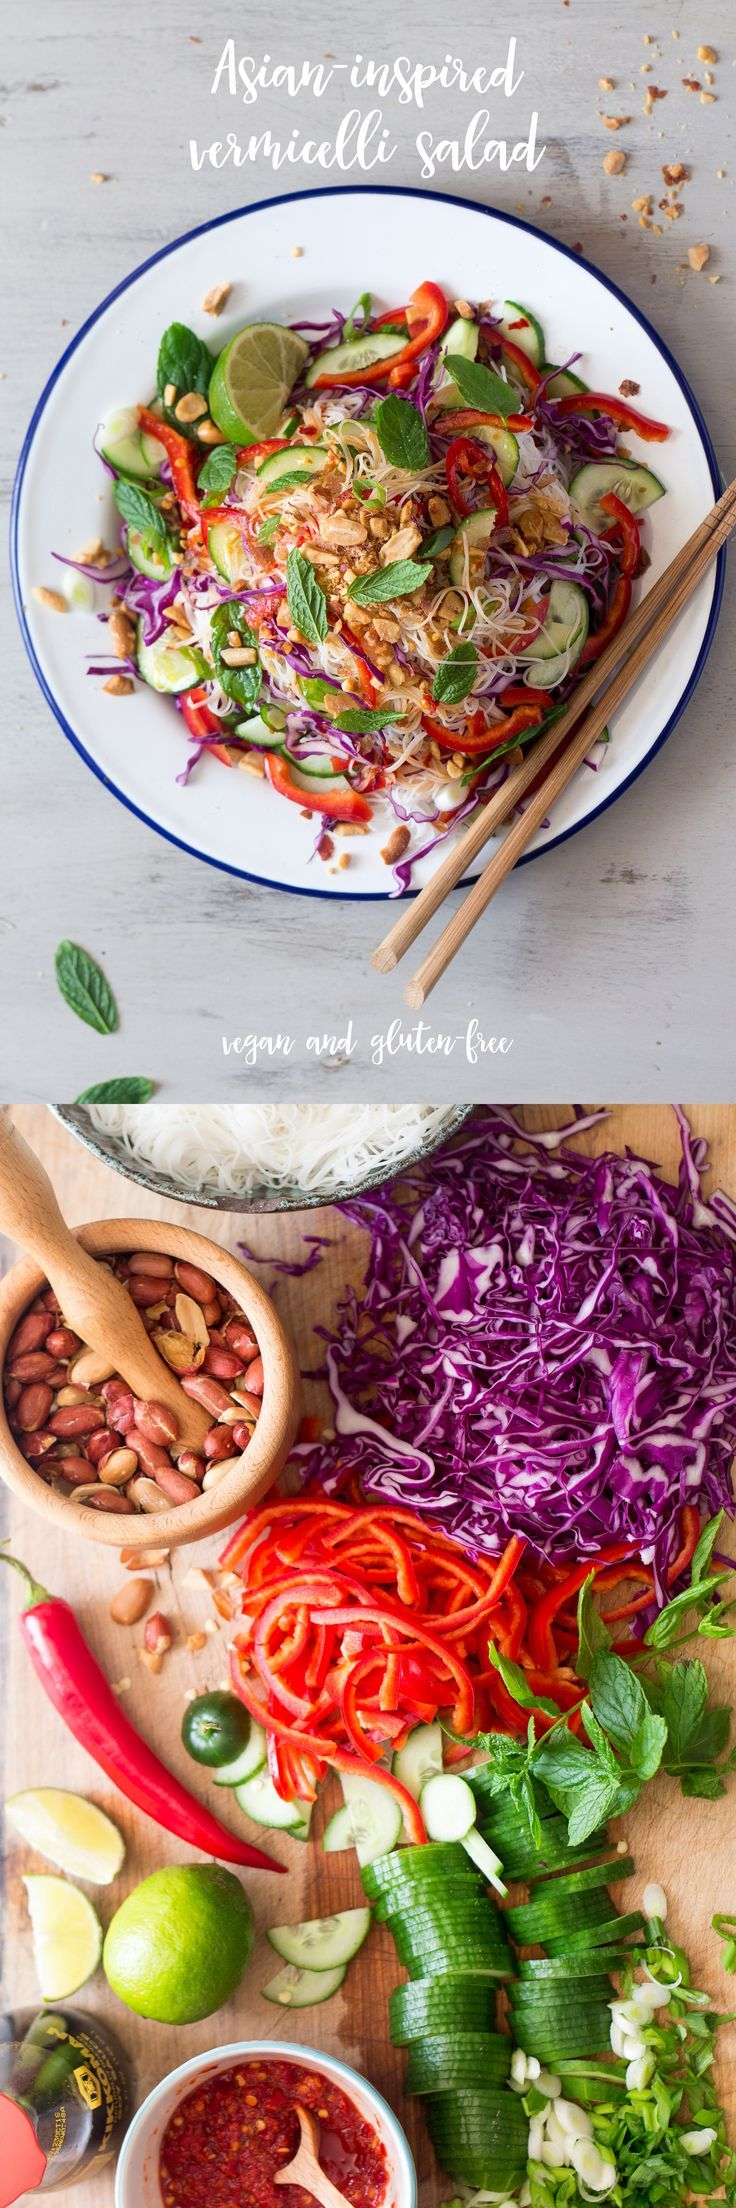 asian inspired vermicelli salad